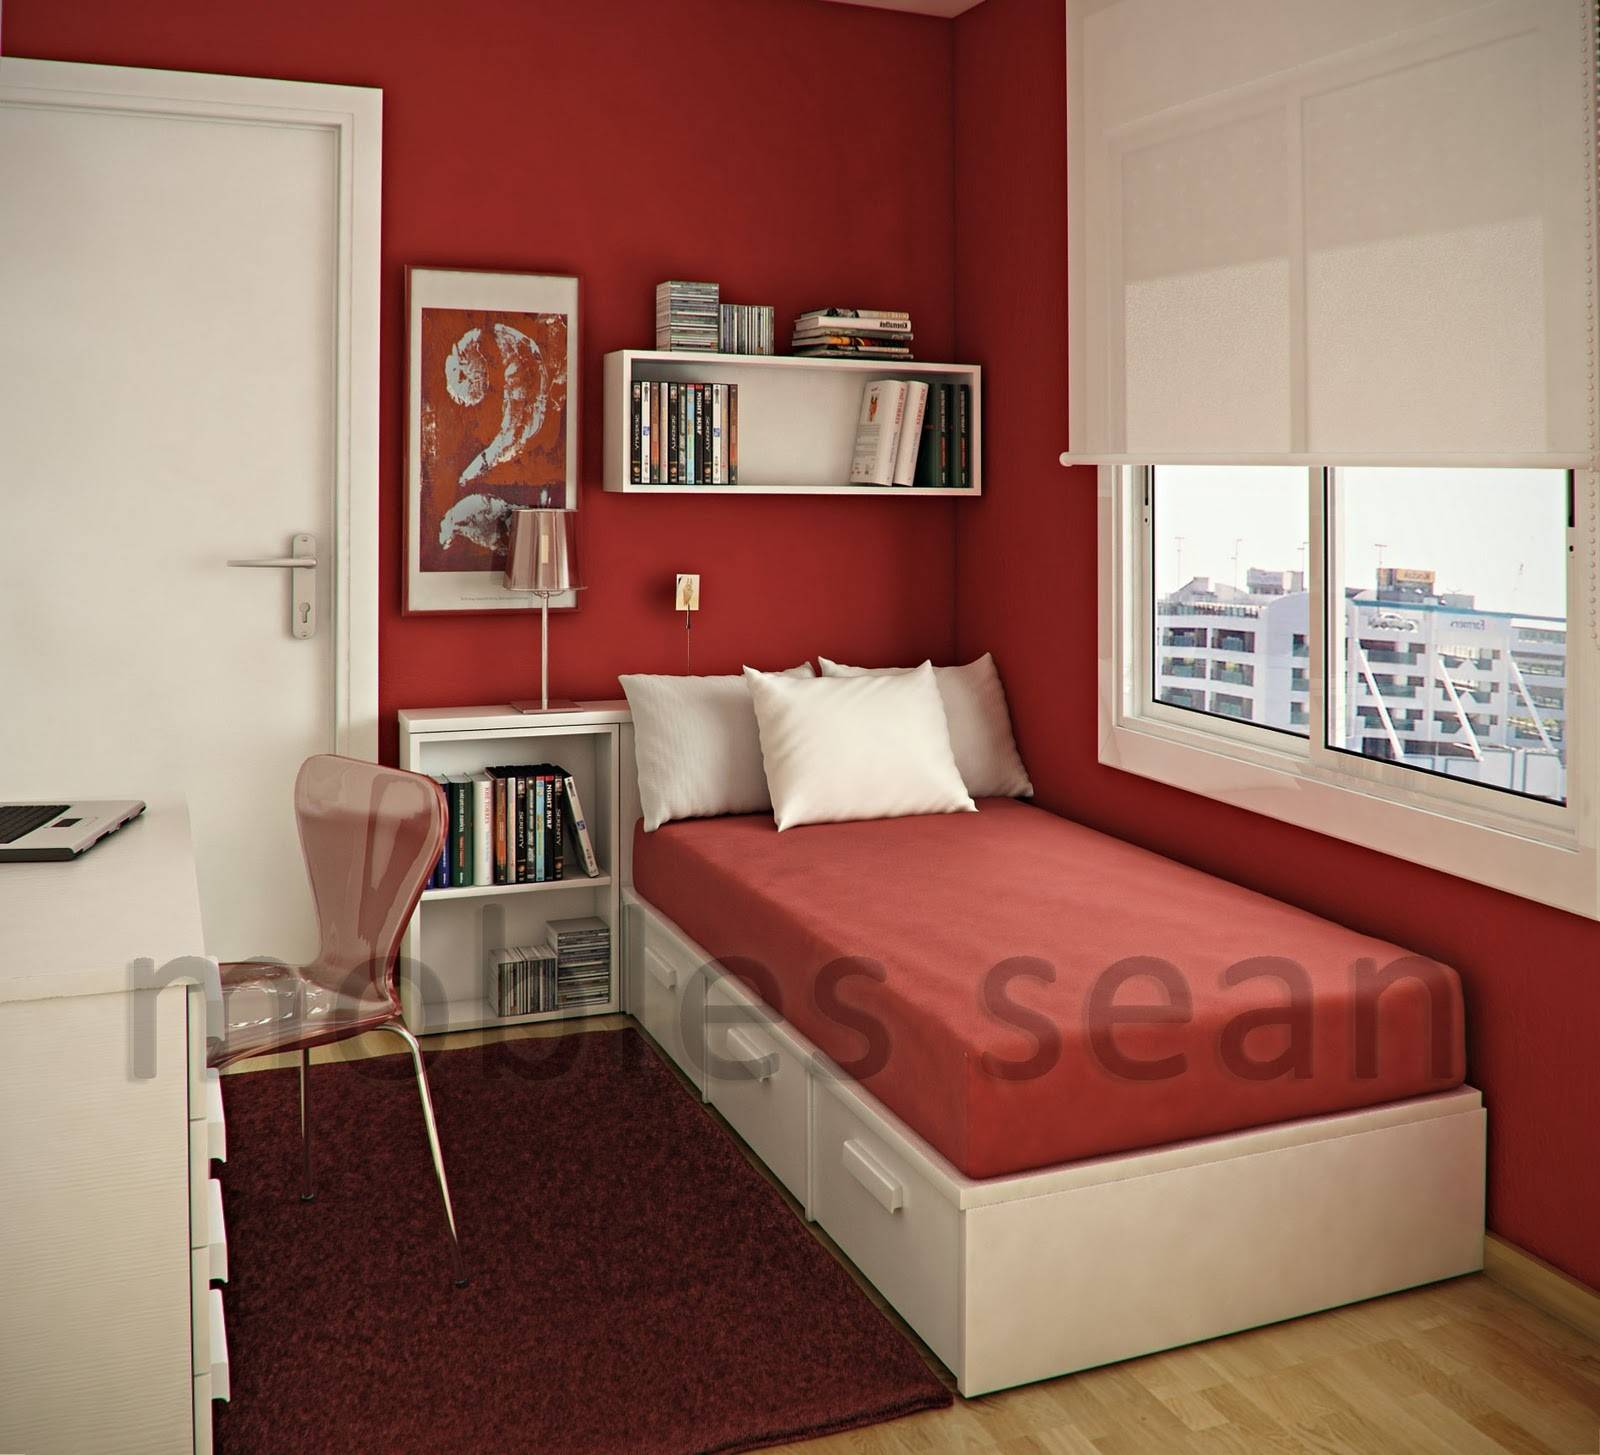 Take A Look Inside The Designing A Small Room Ideas 25 Photos Barb Homes